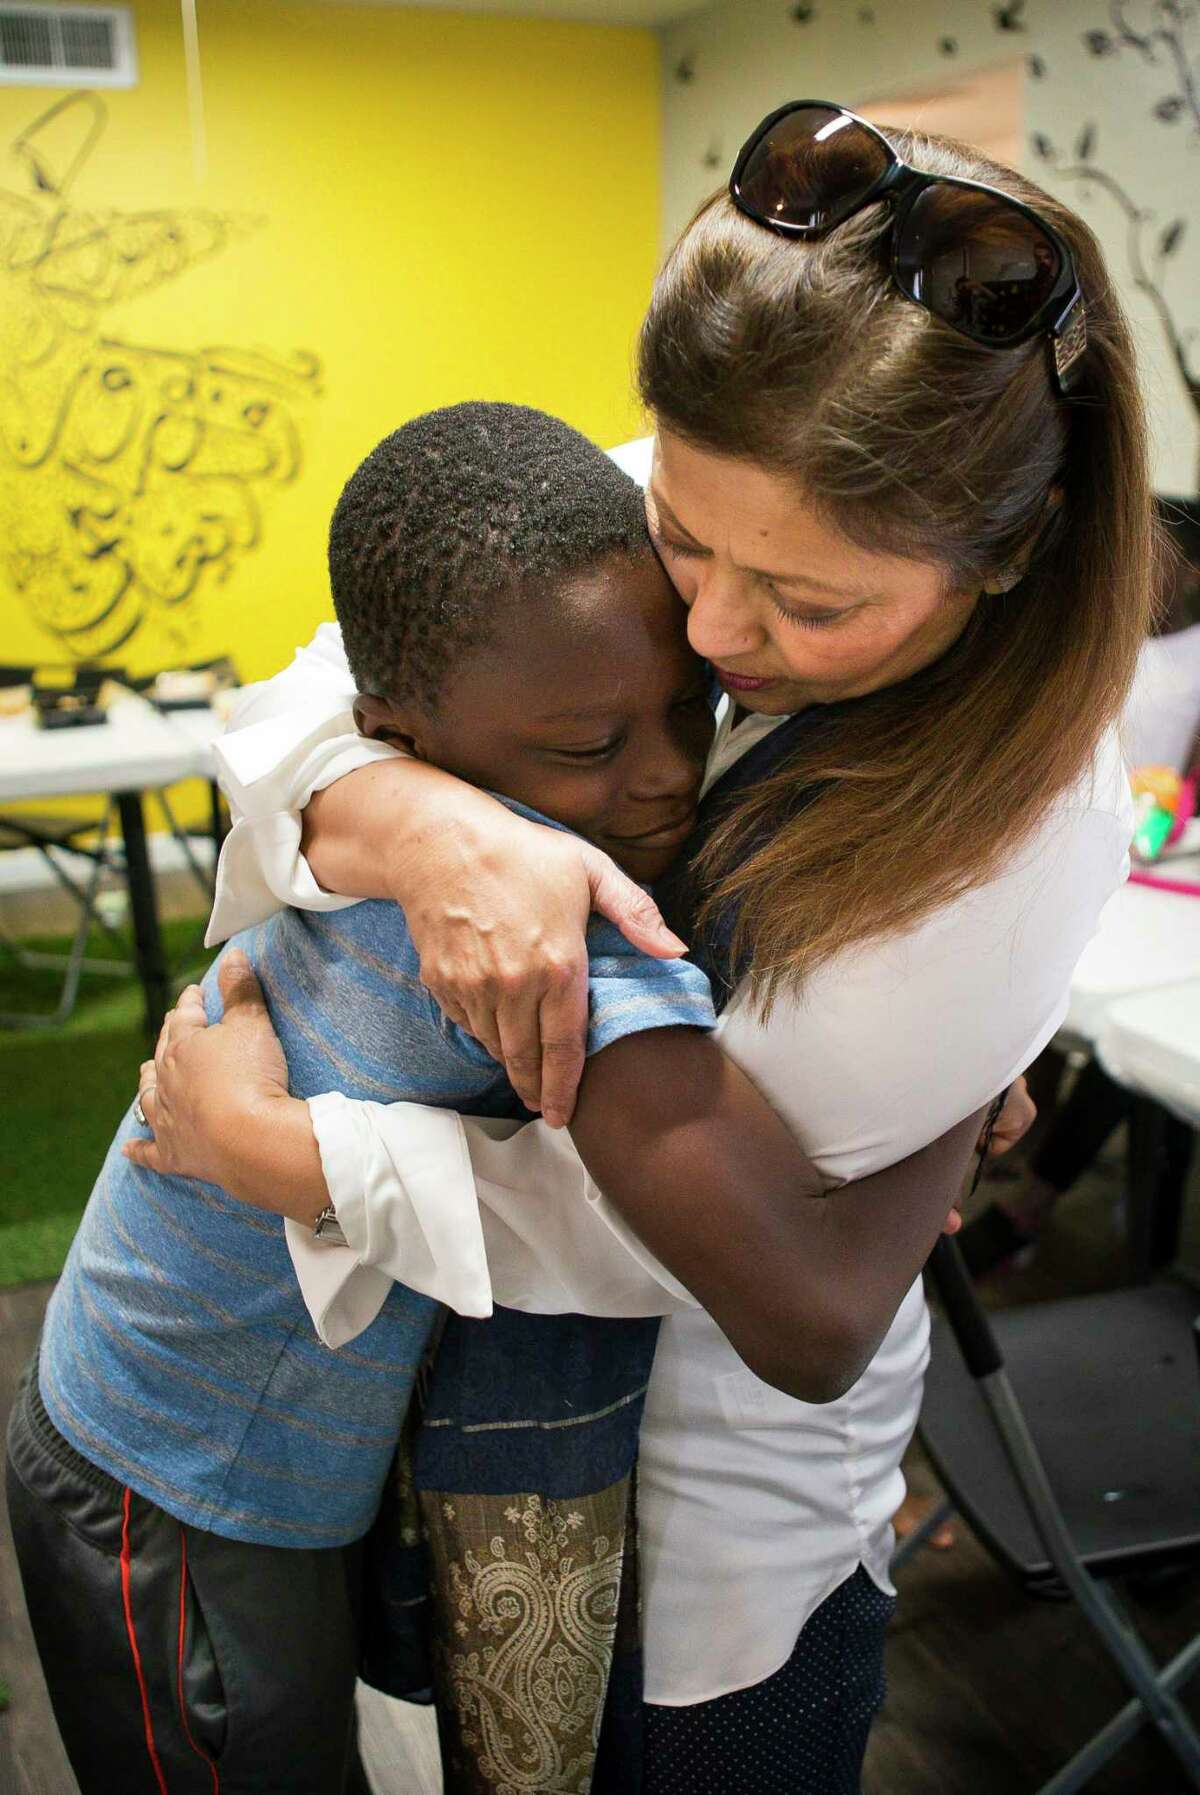 Aisha Siddiqui, the founder of the Houston refugee advocacy group CHAT, receives a hug from Patrick Katta, 9, during a summer camp in Houston in July 2019. CHAT, a non-profit organization founded by Siddiqui to support the health and well-being of Houston's immigrant and refugee community, stands for Culture of Health - Advancing Together. Texas and Houston have long been the country's top destination for refugees